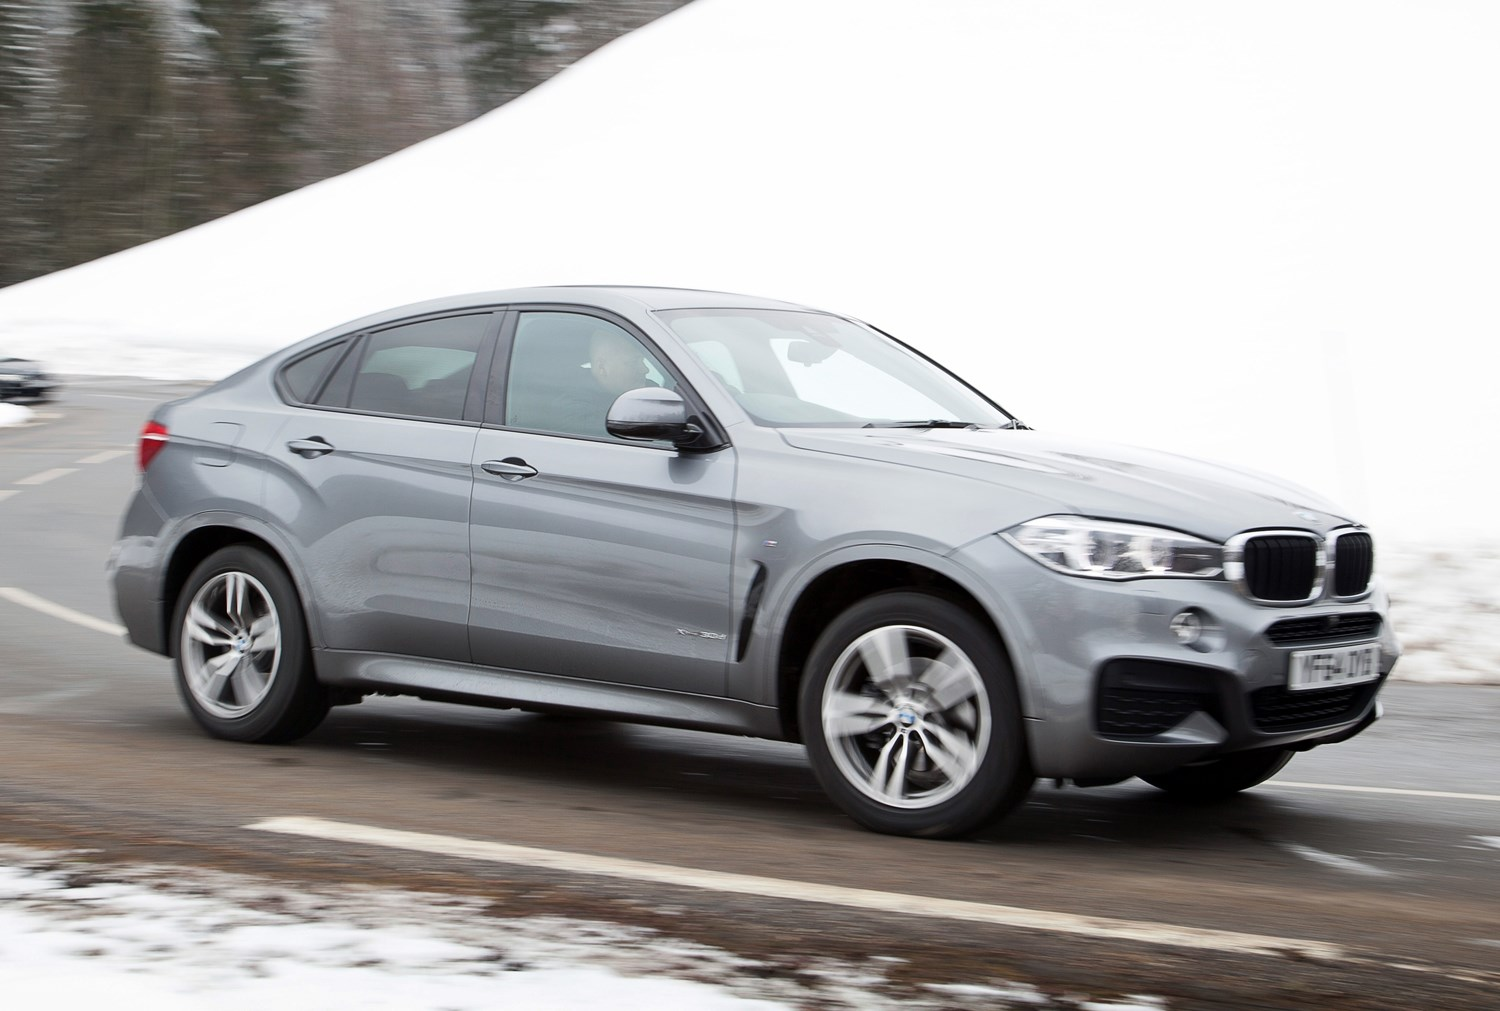 Bmw X6 2019 Mpg Running Costs Economy Amp Co2 Parkers